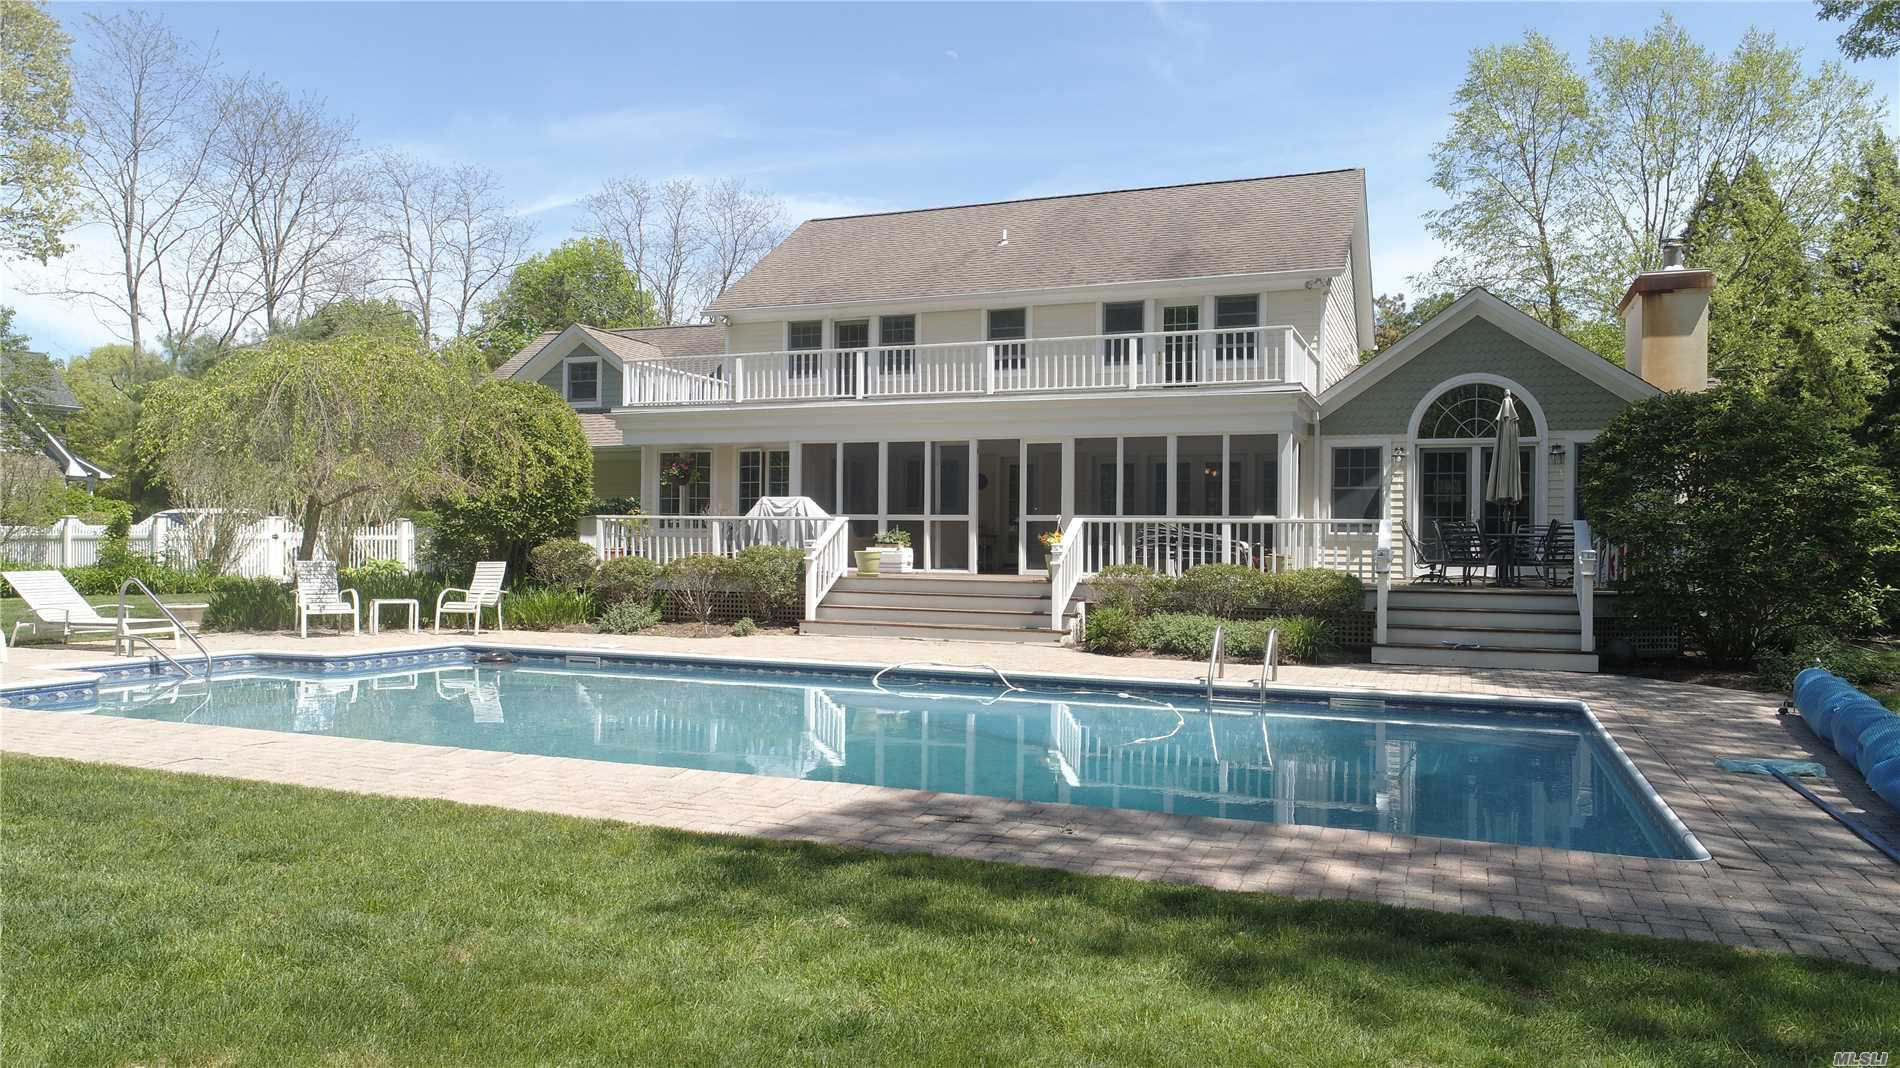 Photo of home for sale at 43 Nidzyn Ave, Remsenburg NY